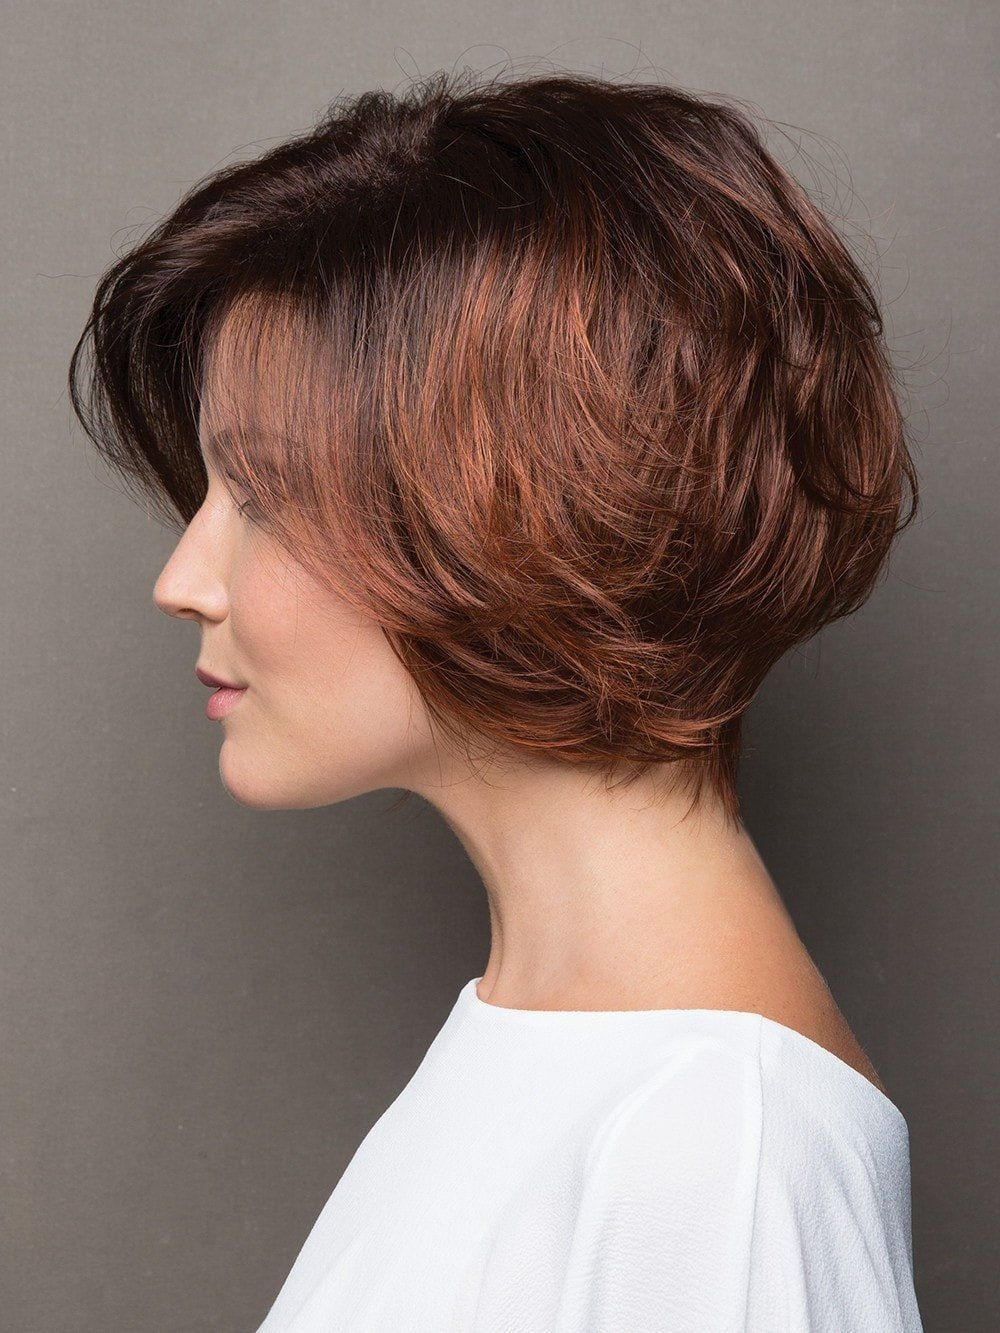 dolce | synthetic wig (traditional cap) | bob hairstyles